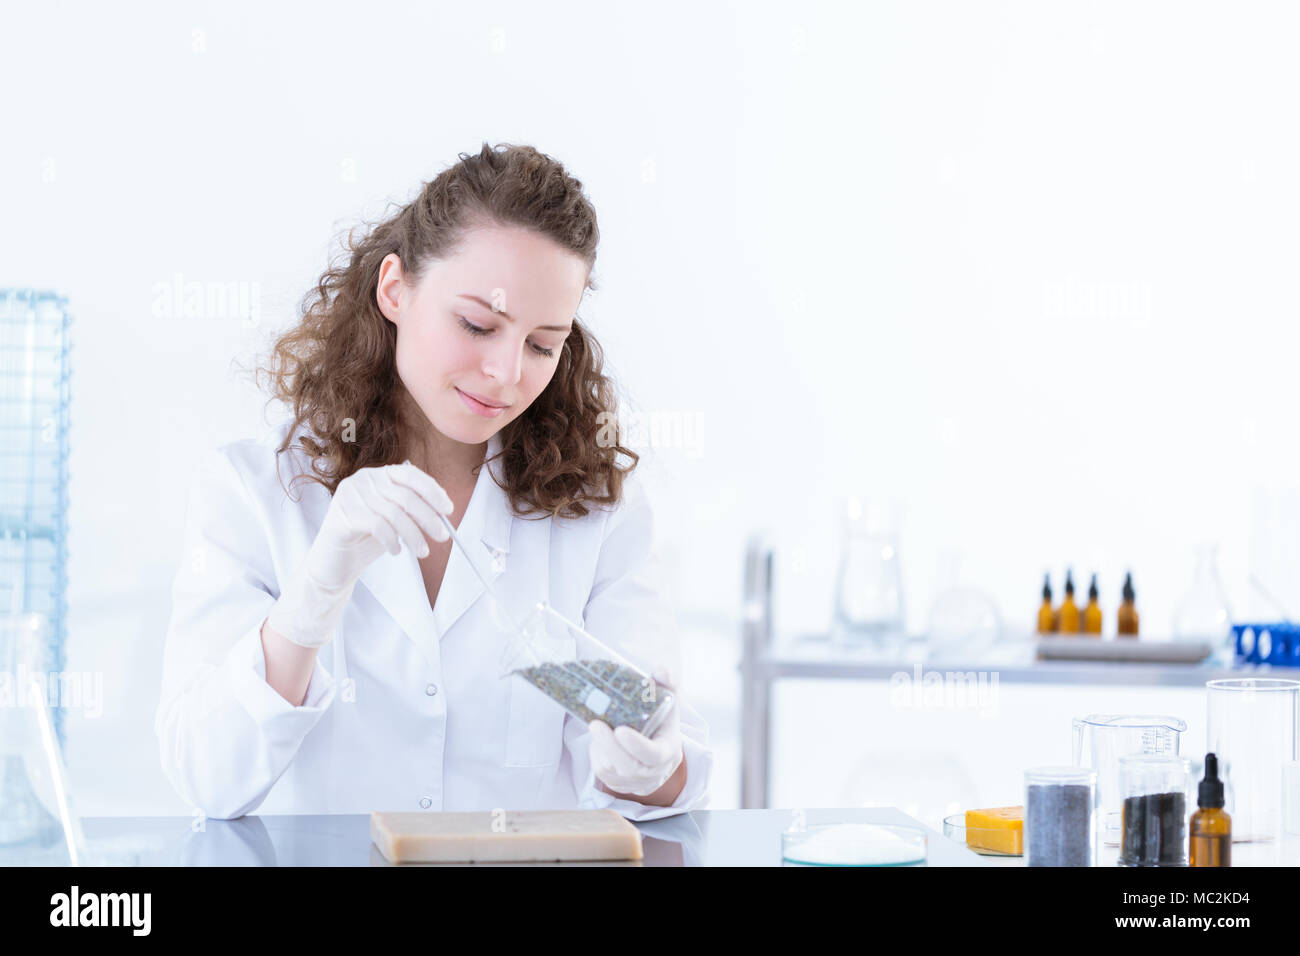 Laborer woman taking a sample of a material for tests in the laboratory - Stock Image